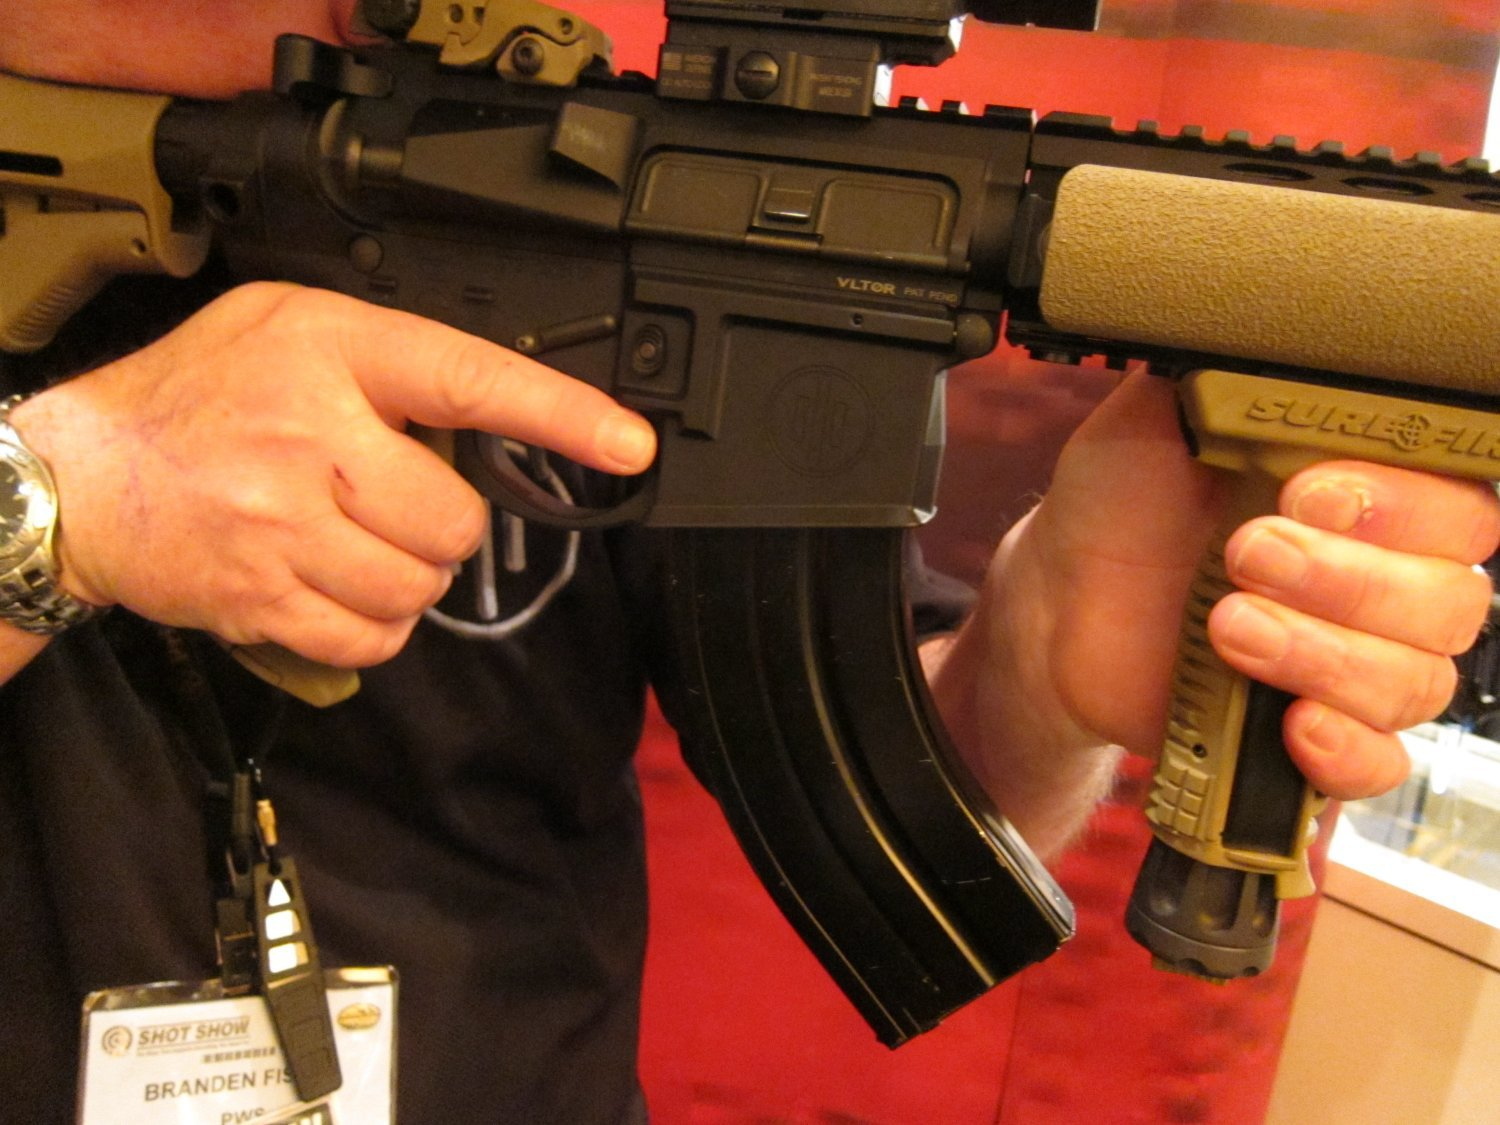 shot show 2010 primary weapons systems pws 762x39mm russian ar sbr 2 <!  :en  >PWS Diablo 7.62x39mm Russian: 7 Barreled Long Stroke Gas Piston/Op Rod AR (AR 15) SBR/Complete Upper Receiver Assembly<!  :  >